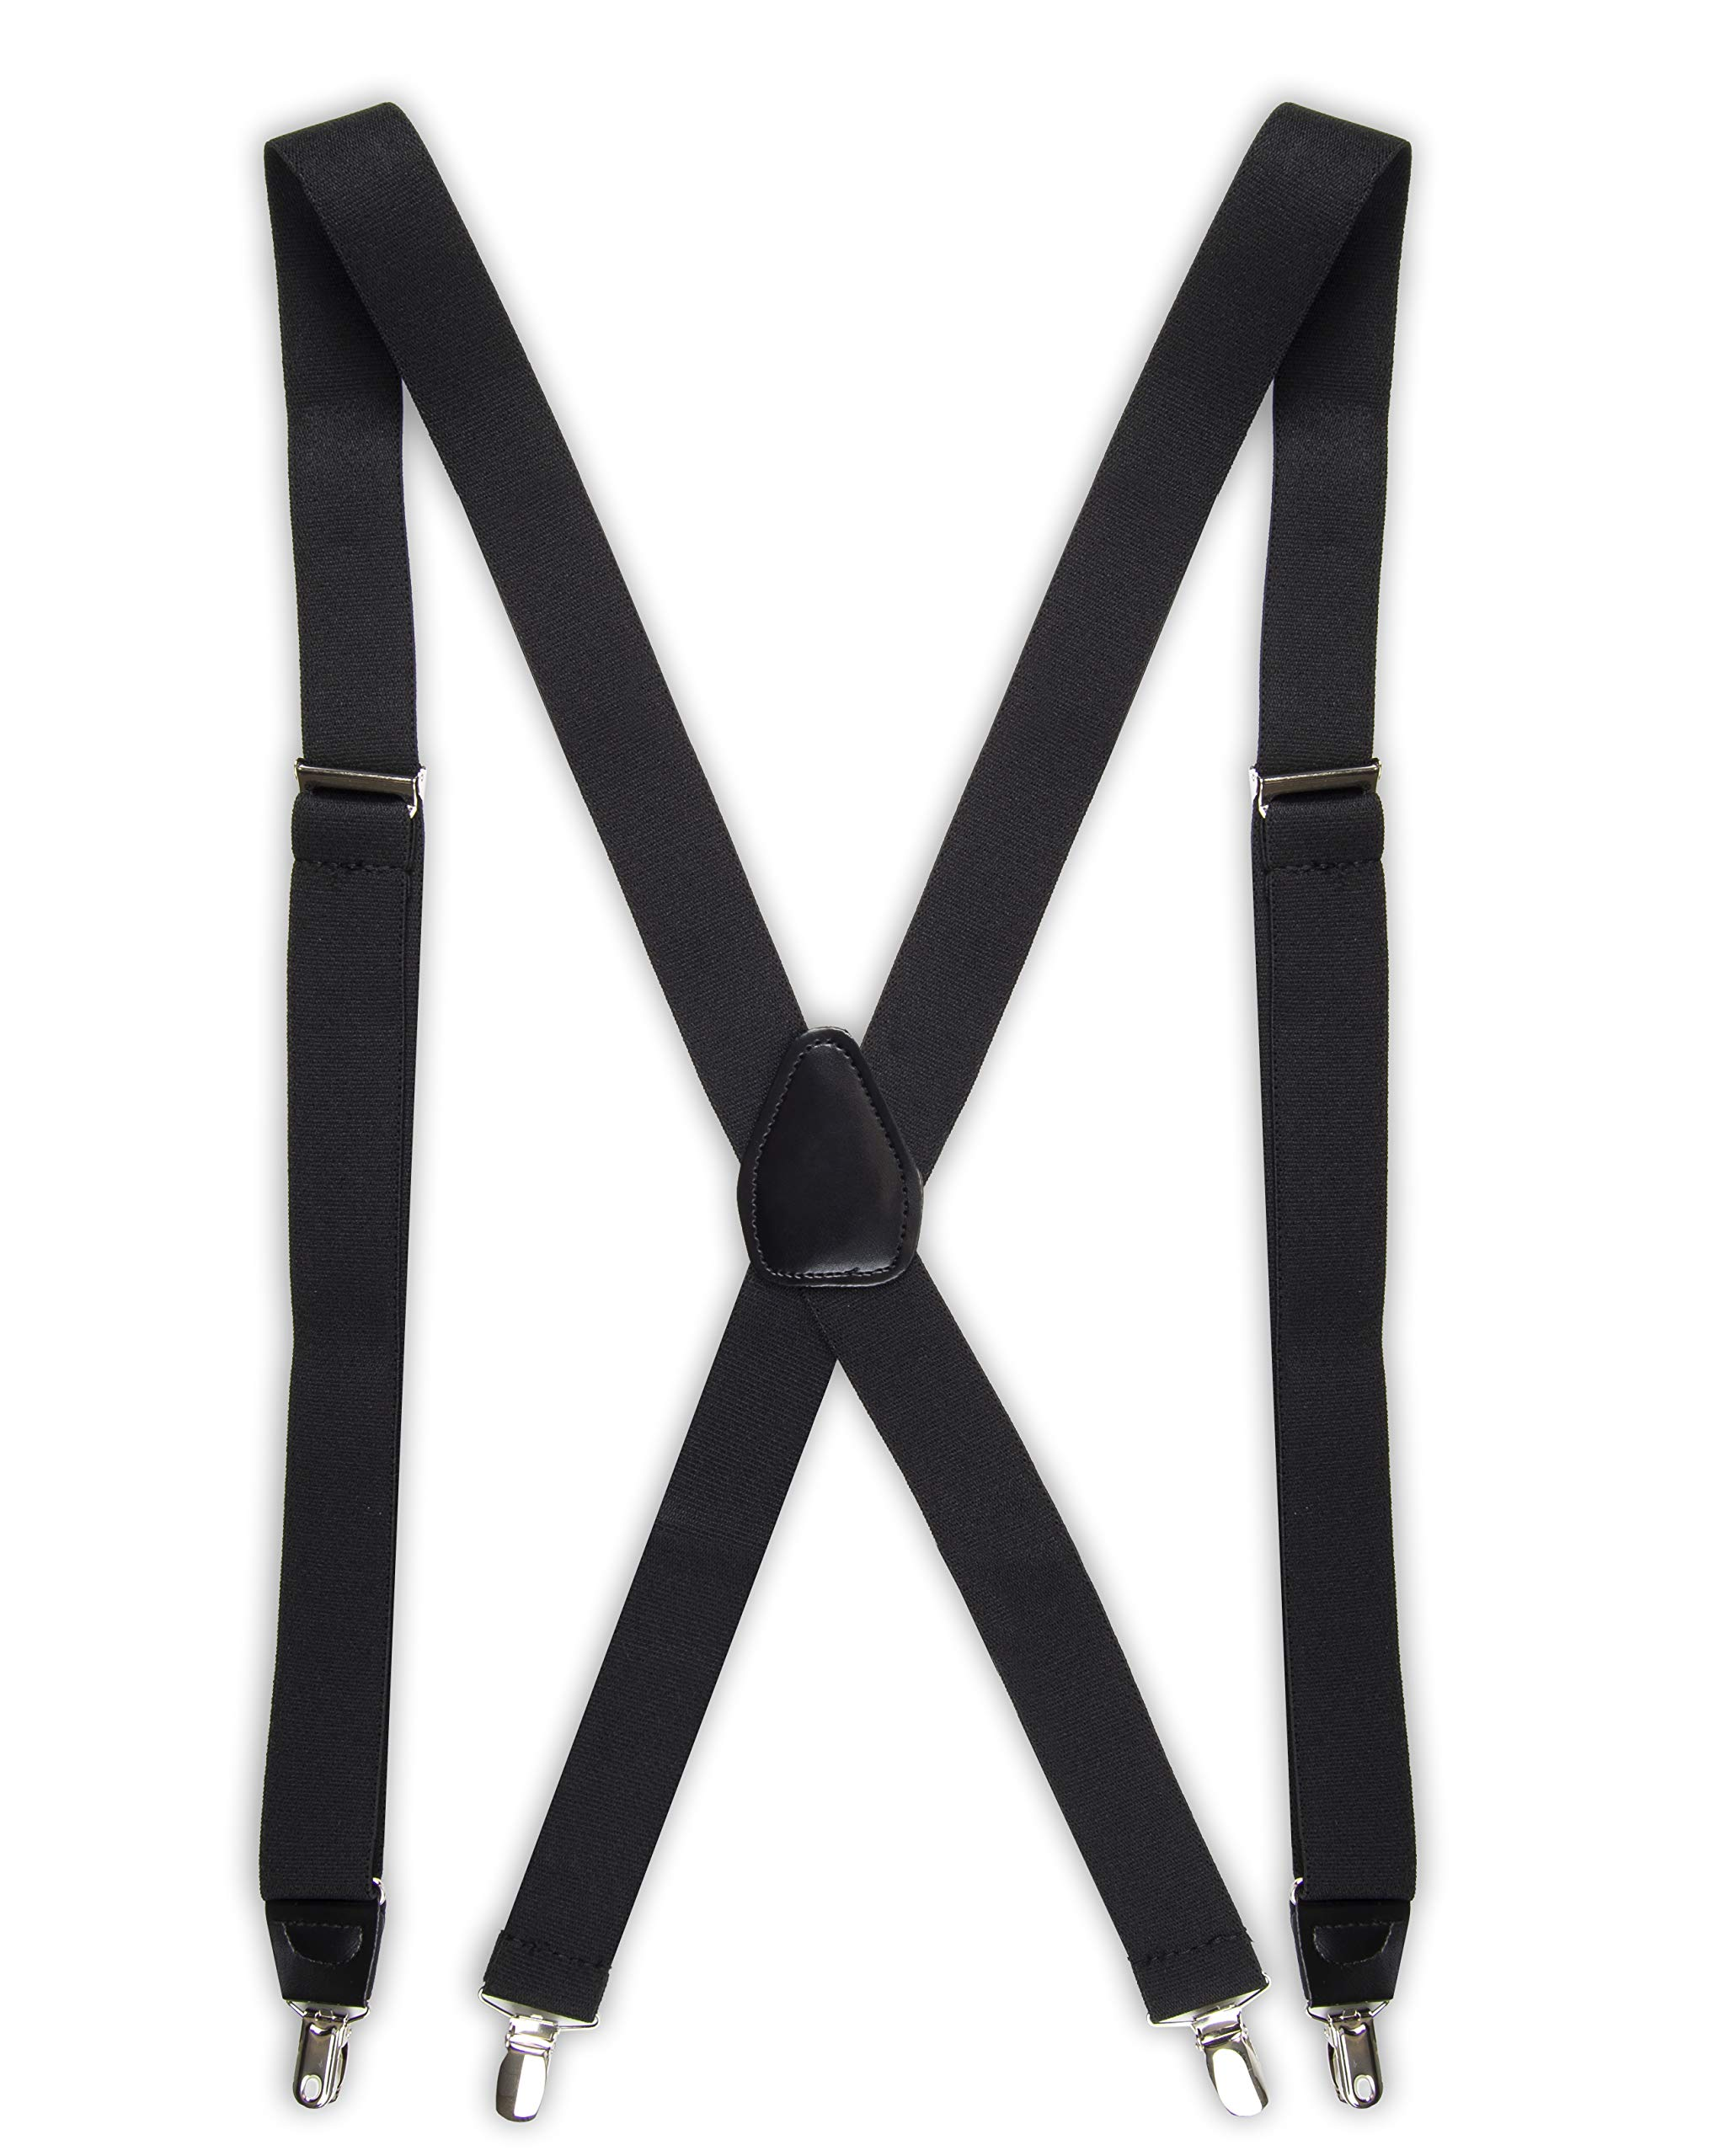 Dockers Mens Solid Suspender Black